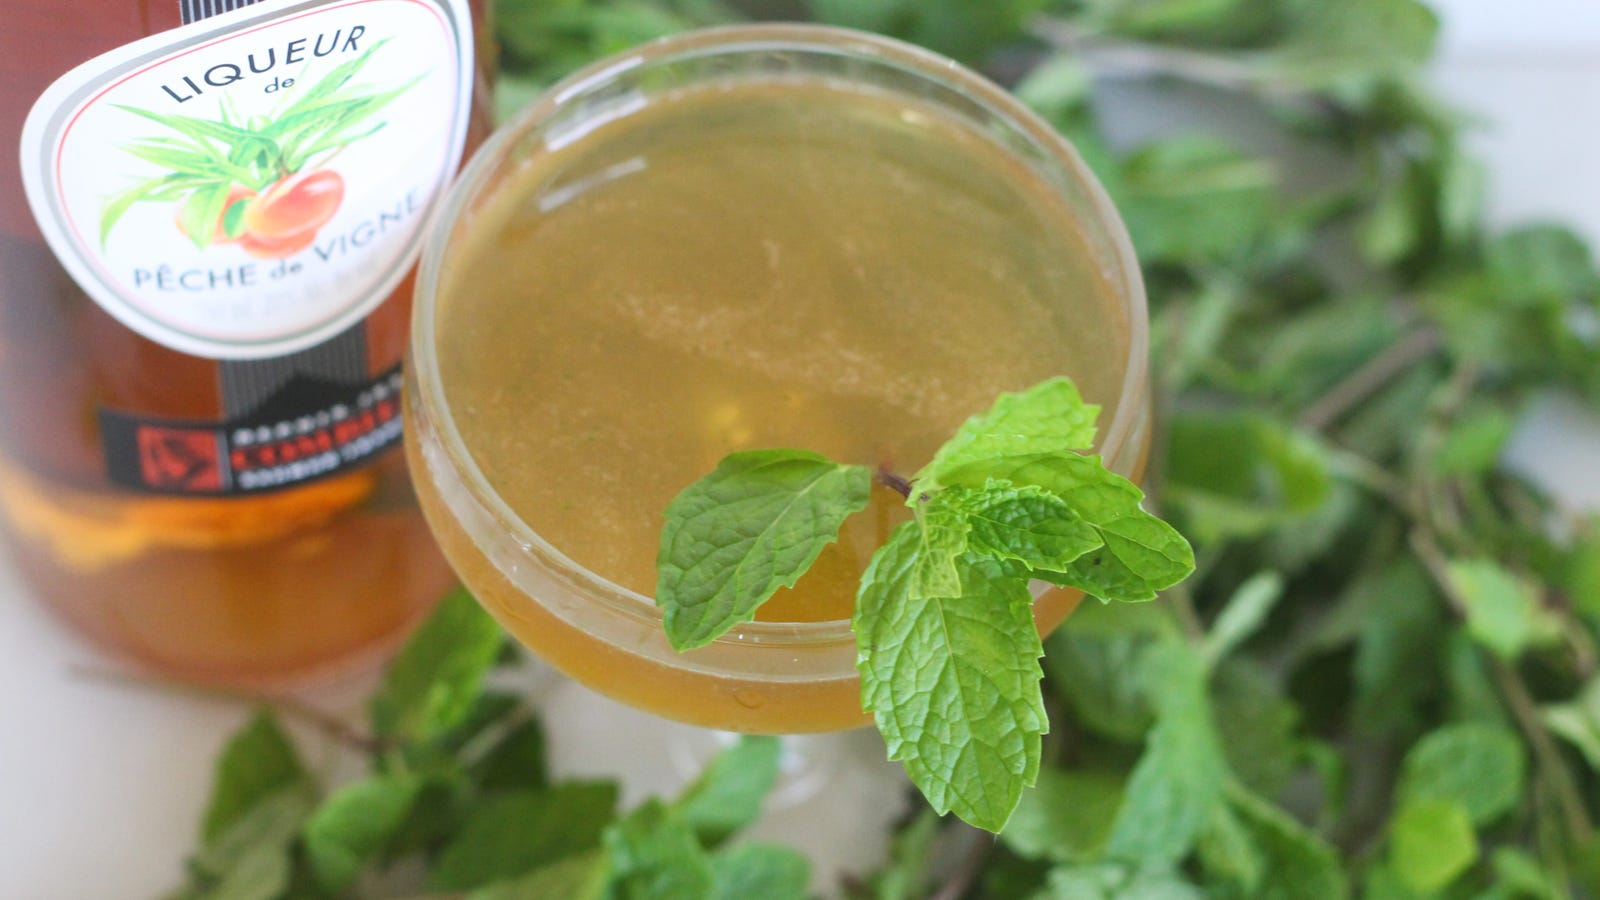 Enjoy This Peach-Mint Cocktail for No Particular Reason